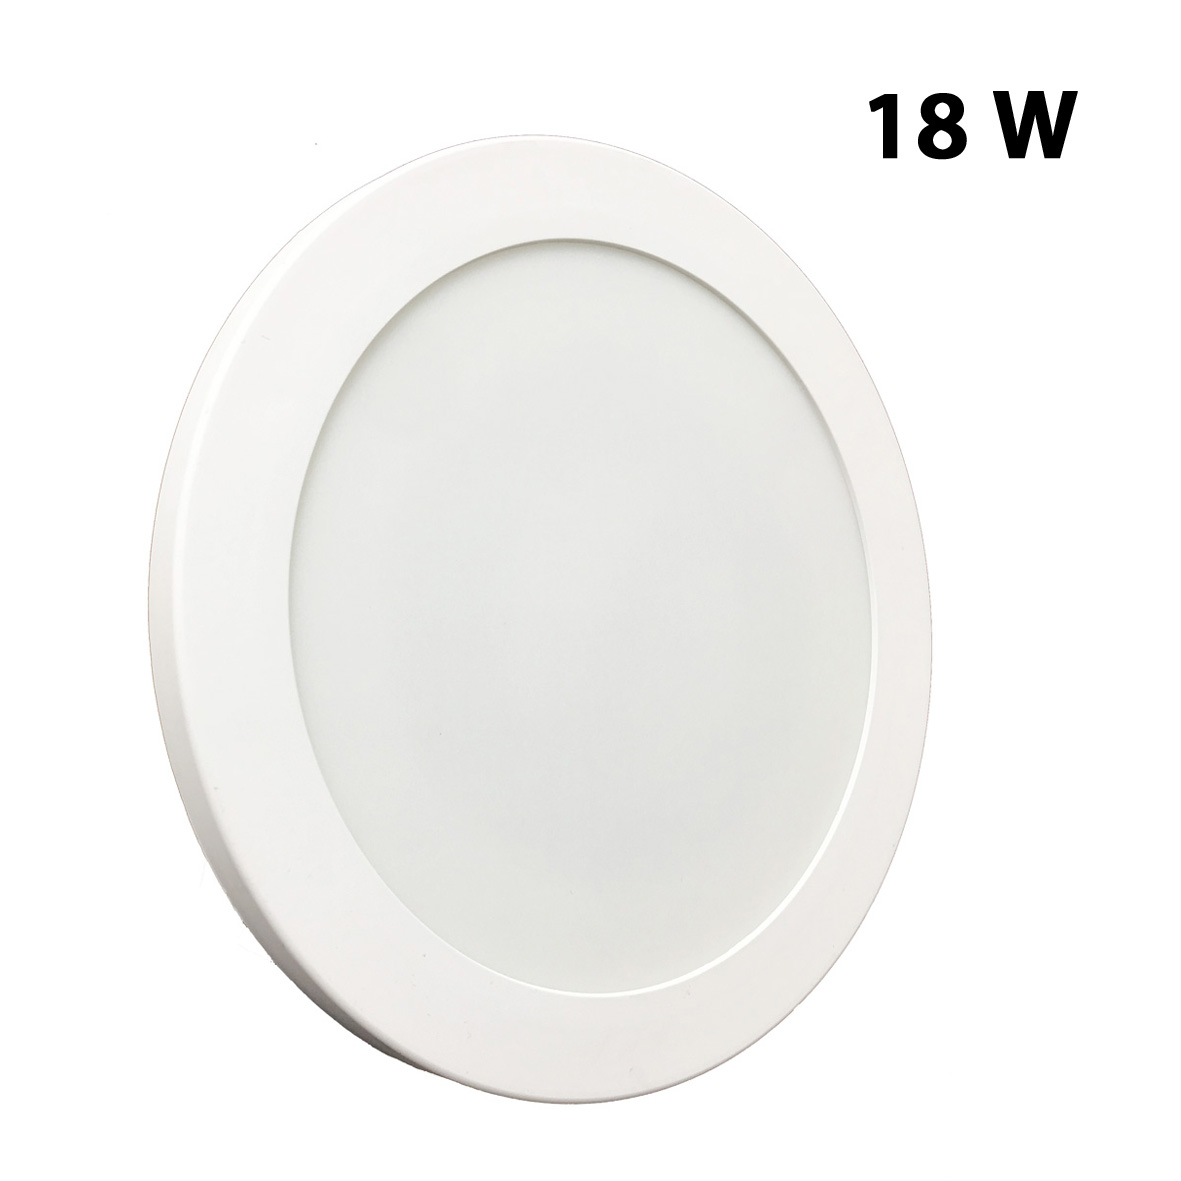 Plafoniera applique LED 18w slim disco diametro 225 mm da muro, soffitto LED